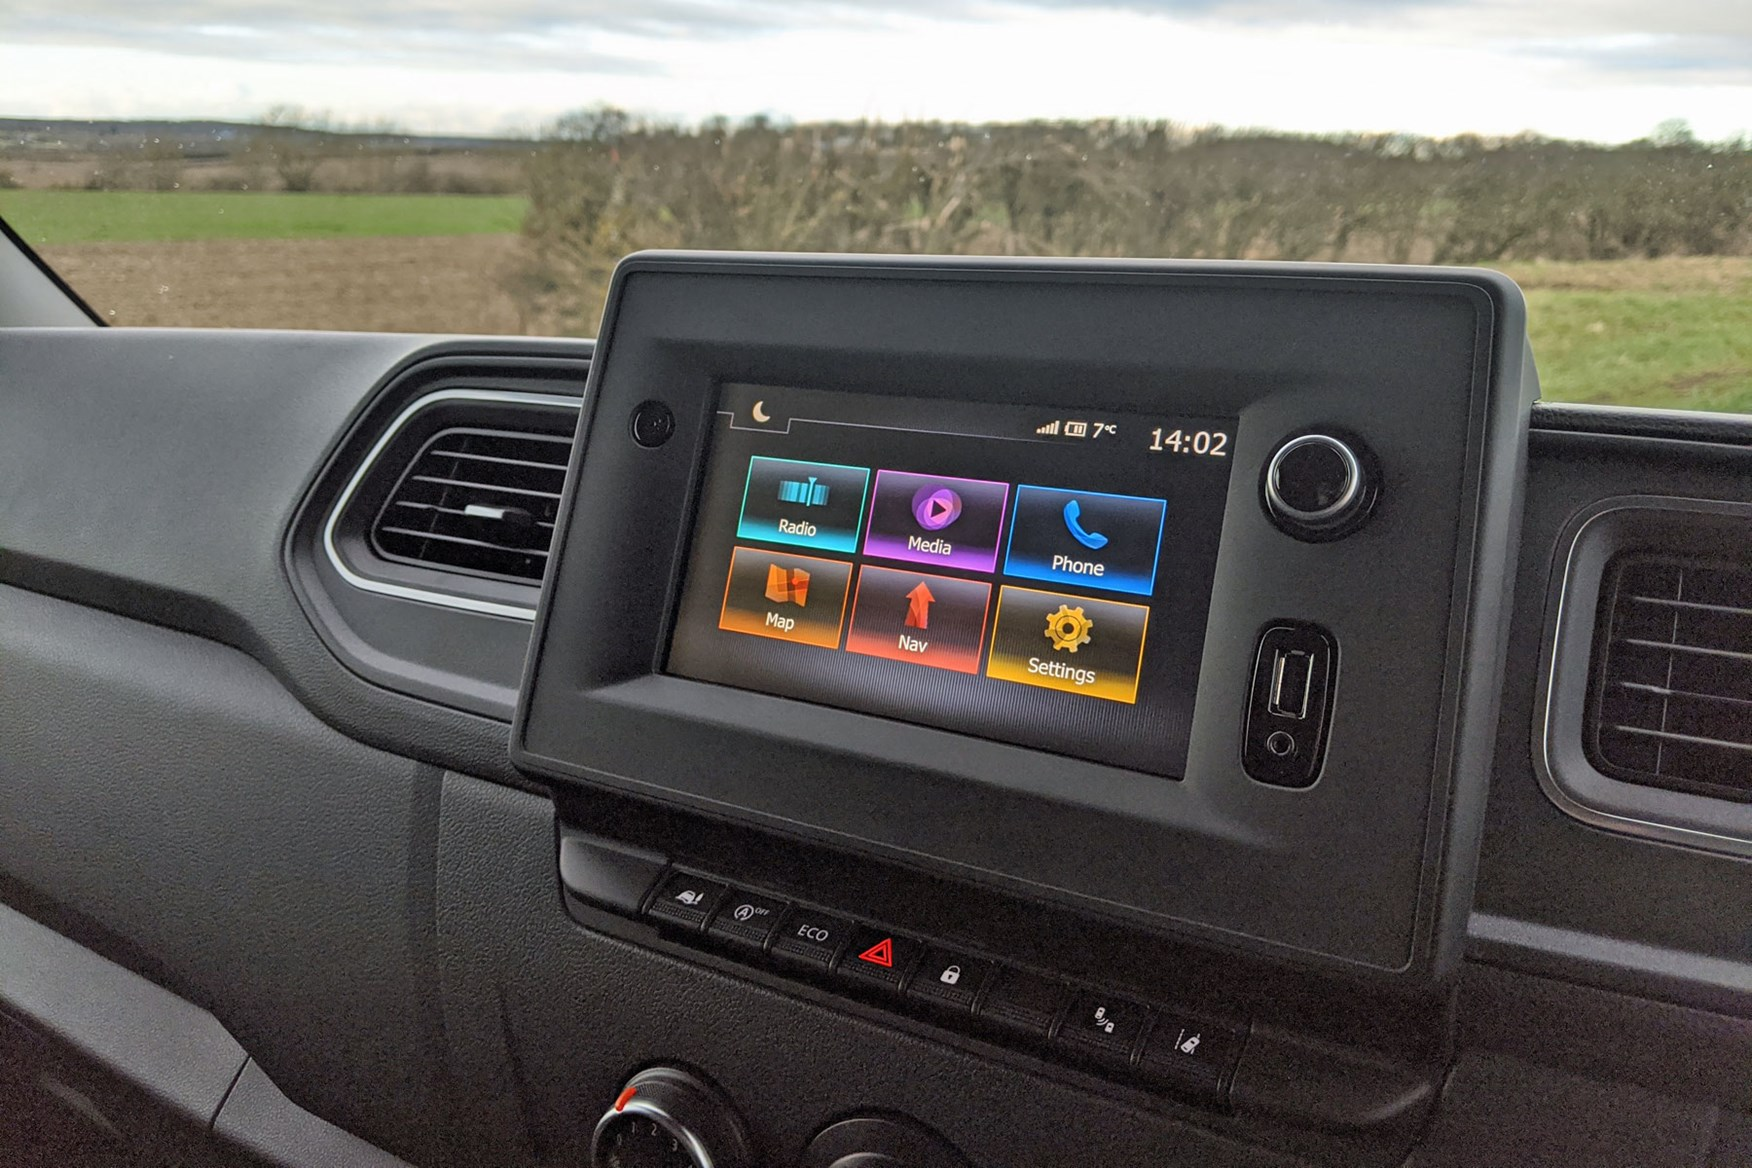 Vauxhall Movano 150hp FWD review - infotainment system, 2020